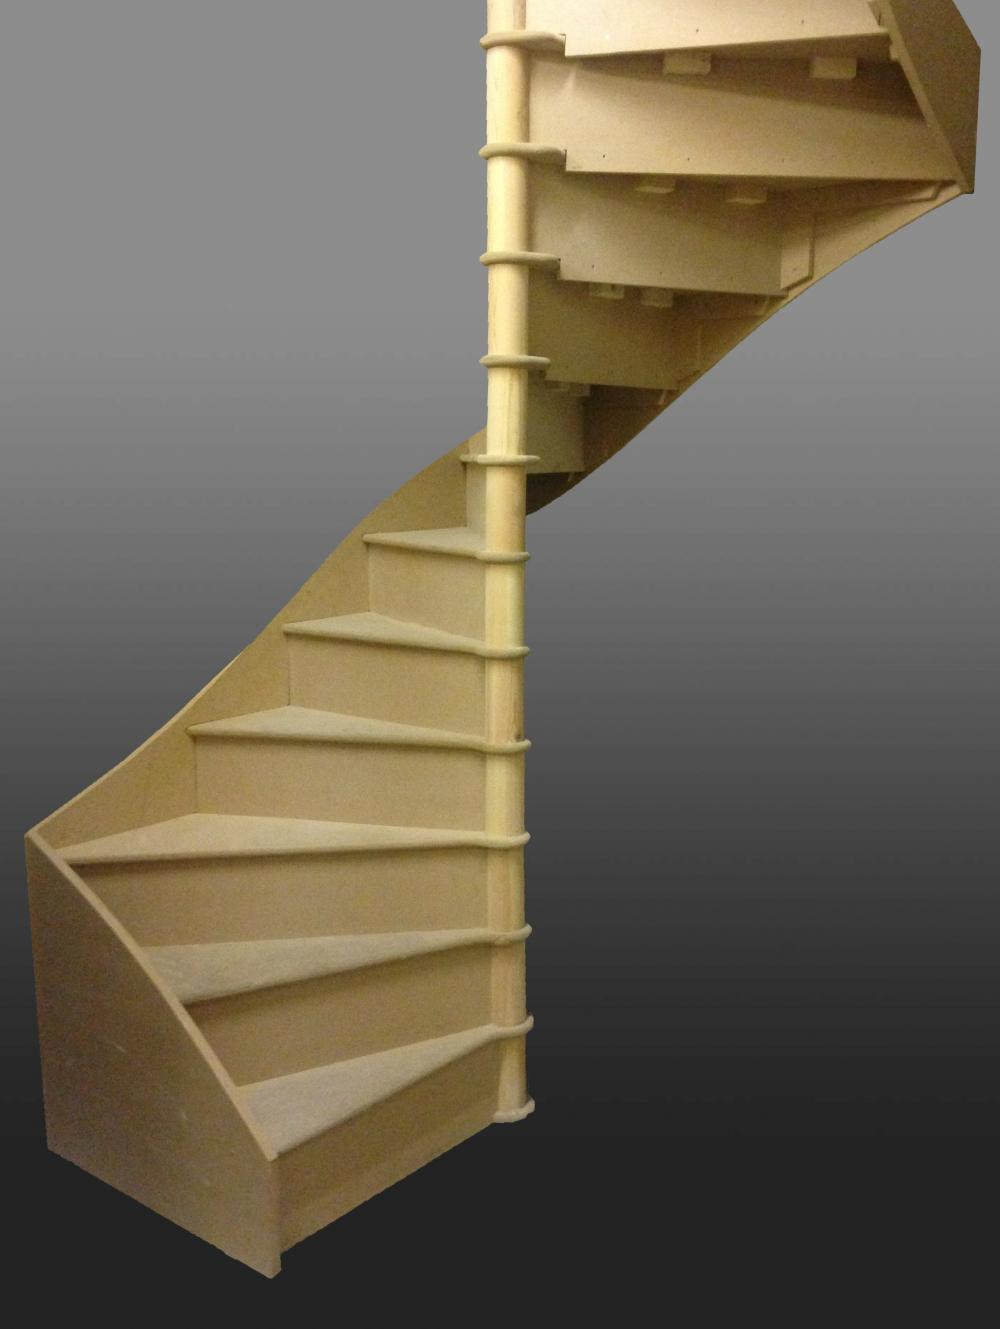 Picture of: Square Spiral Stairs Inspiraling Stair Systems Spiral Staircases Space Saving